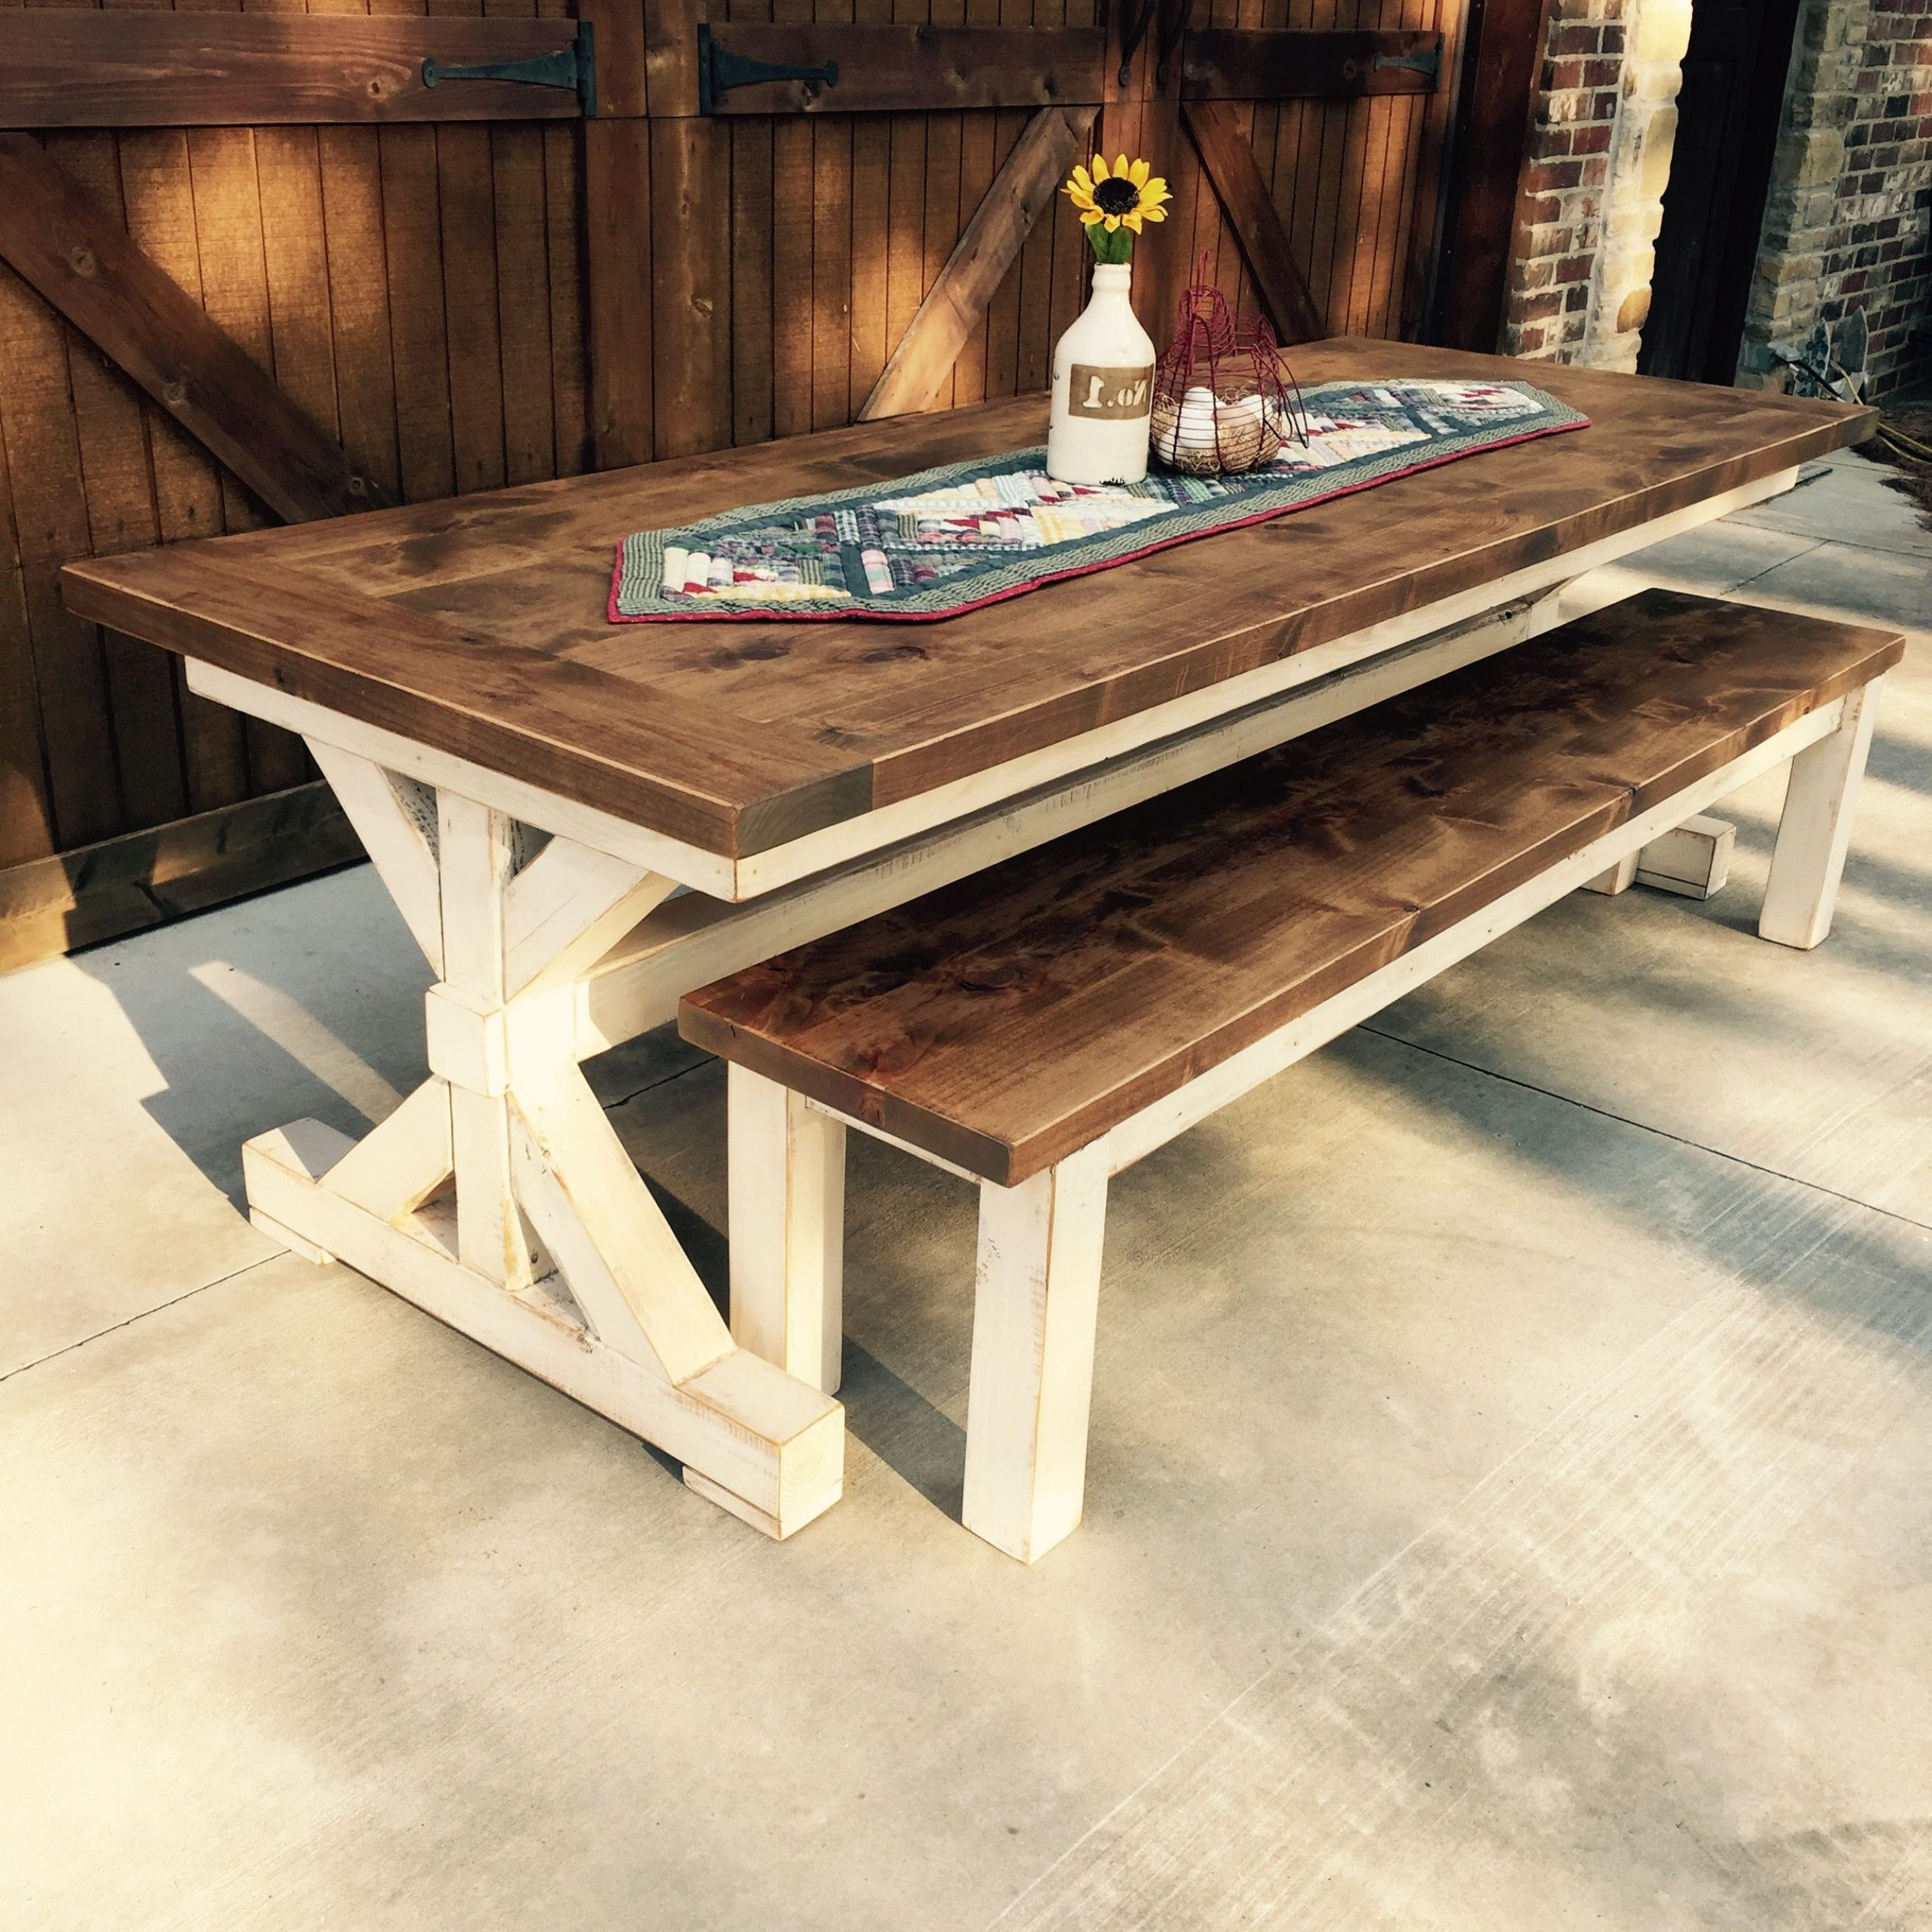 Country Dining Tables With Weathered Pine Finish Regarding Favorite Knotty Alder Farm Table And Bench Handcraftedl (View 3 of 30)